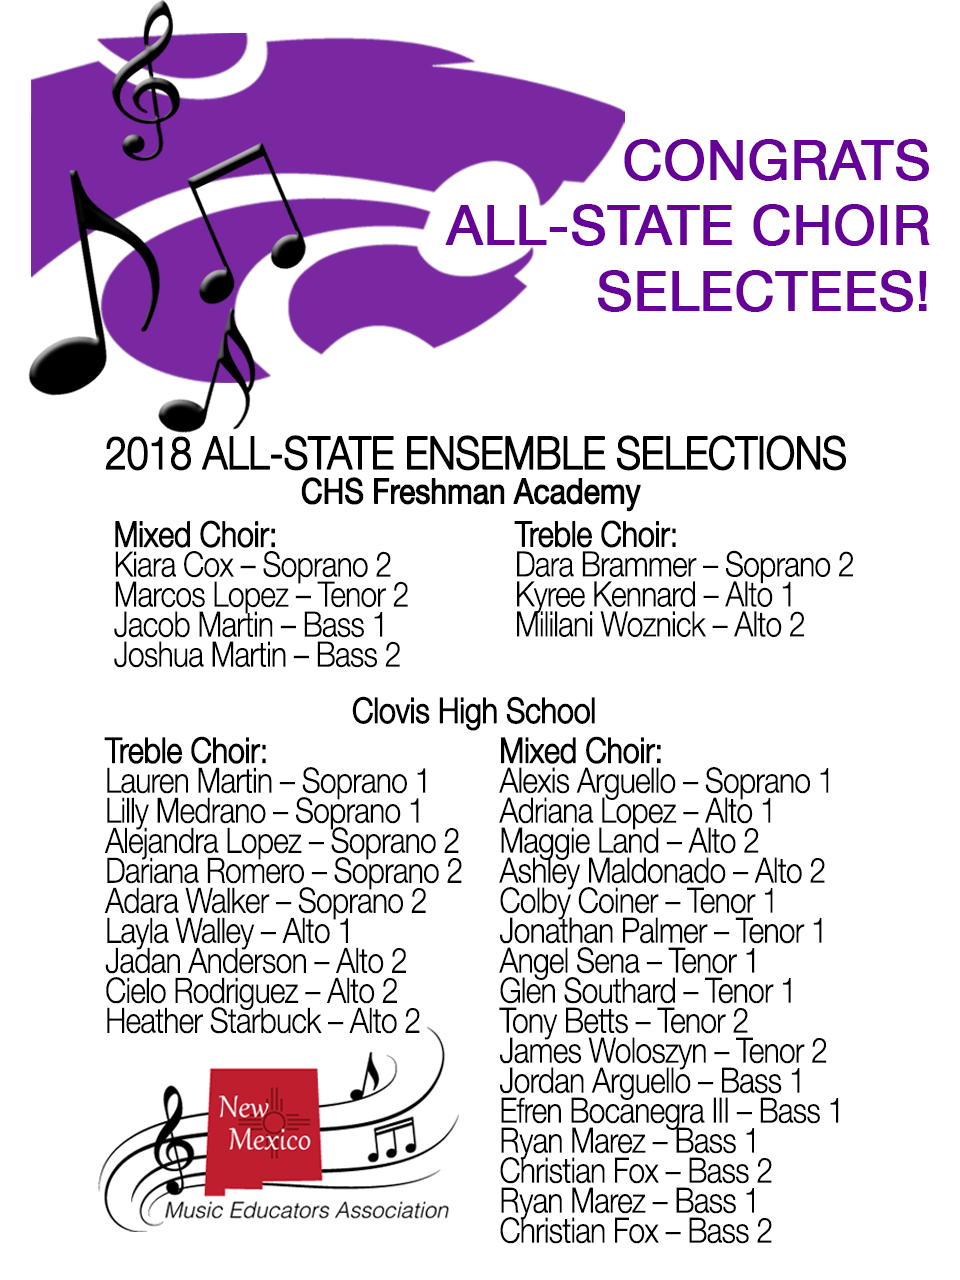 Image of text list of All-State Selectees